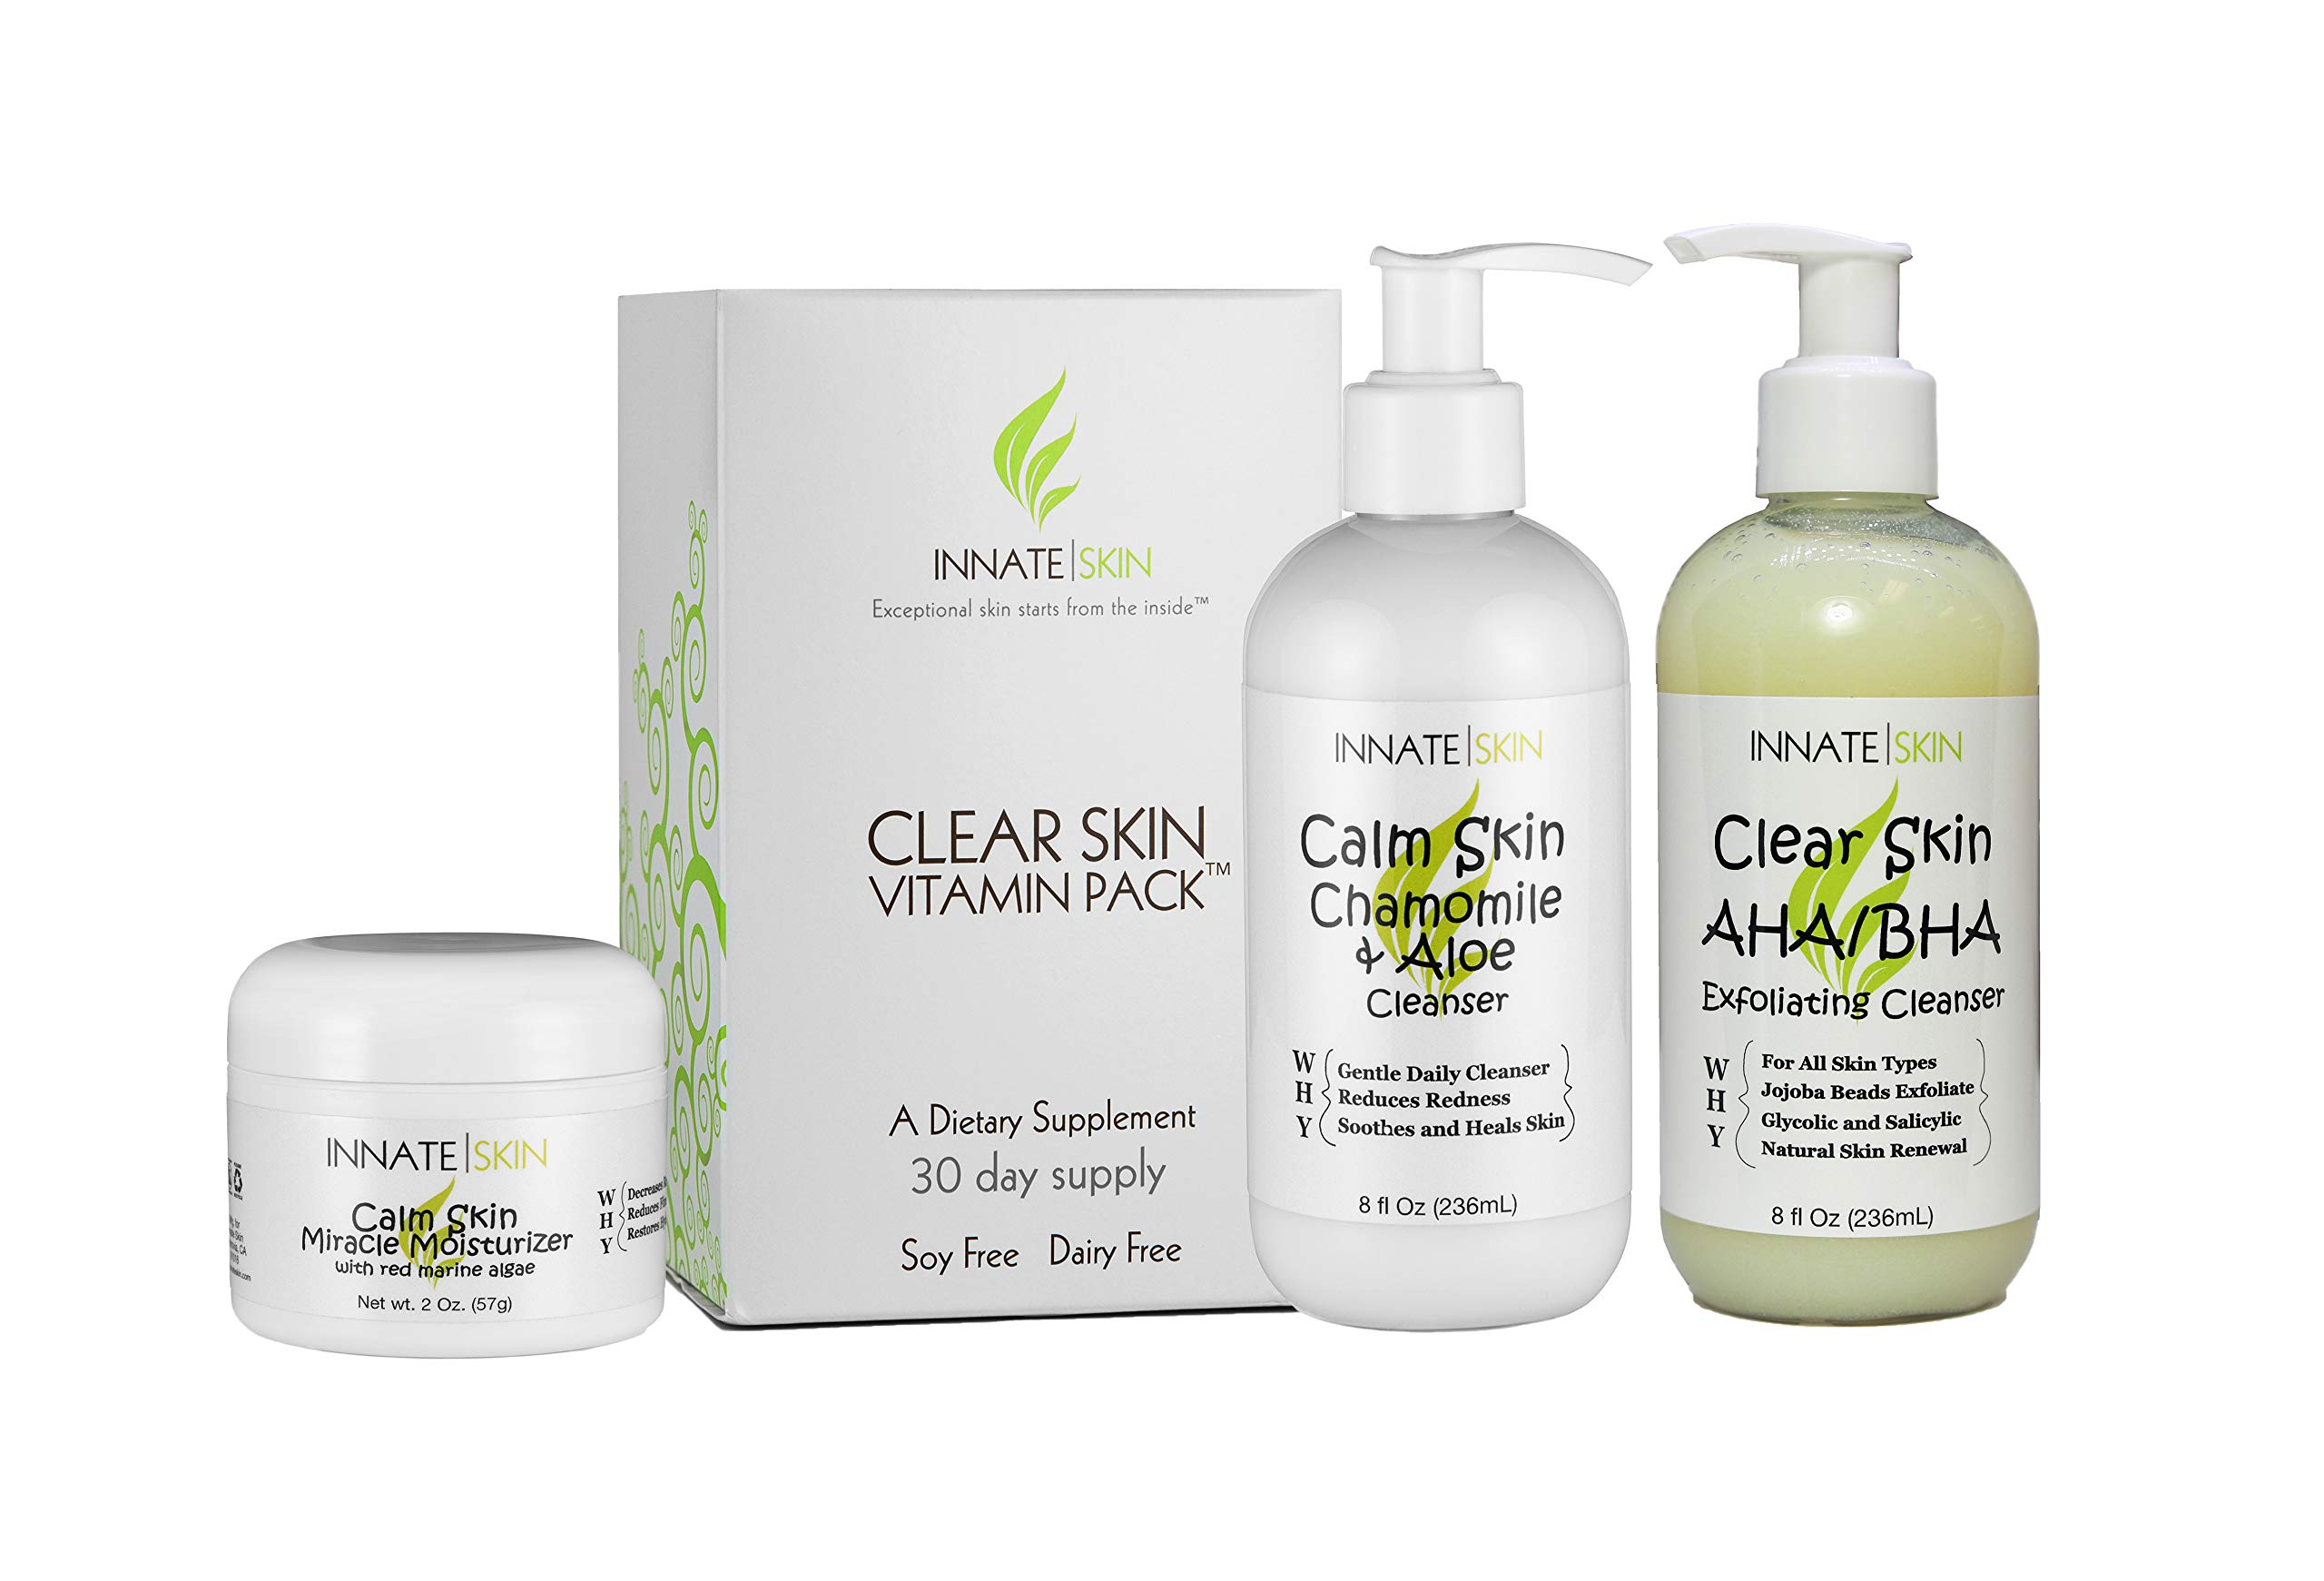 Clear Skin Advanced Vitamin Pack for Acne - 60 Day Supply of Vitamins for Acne by Innate Skin (Image #7)